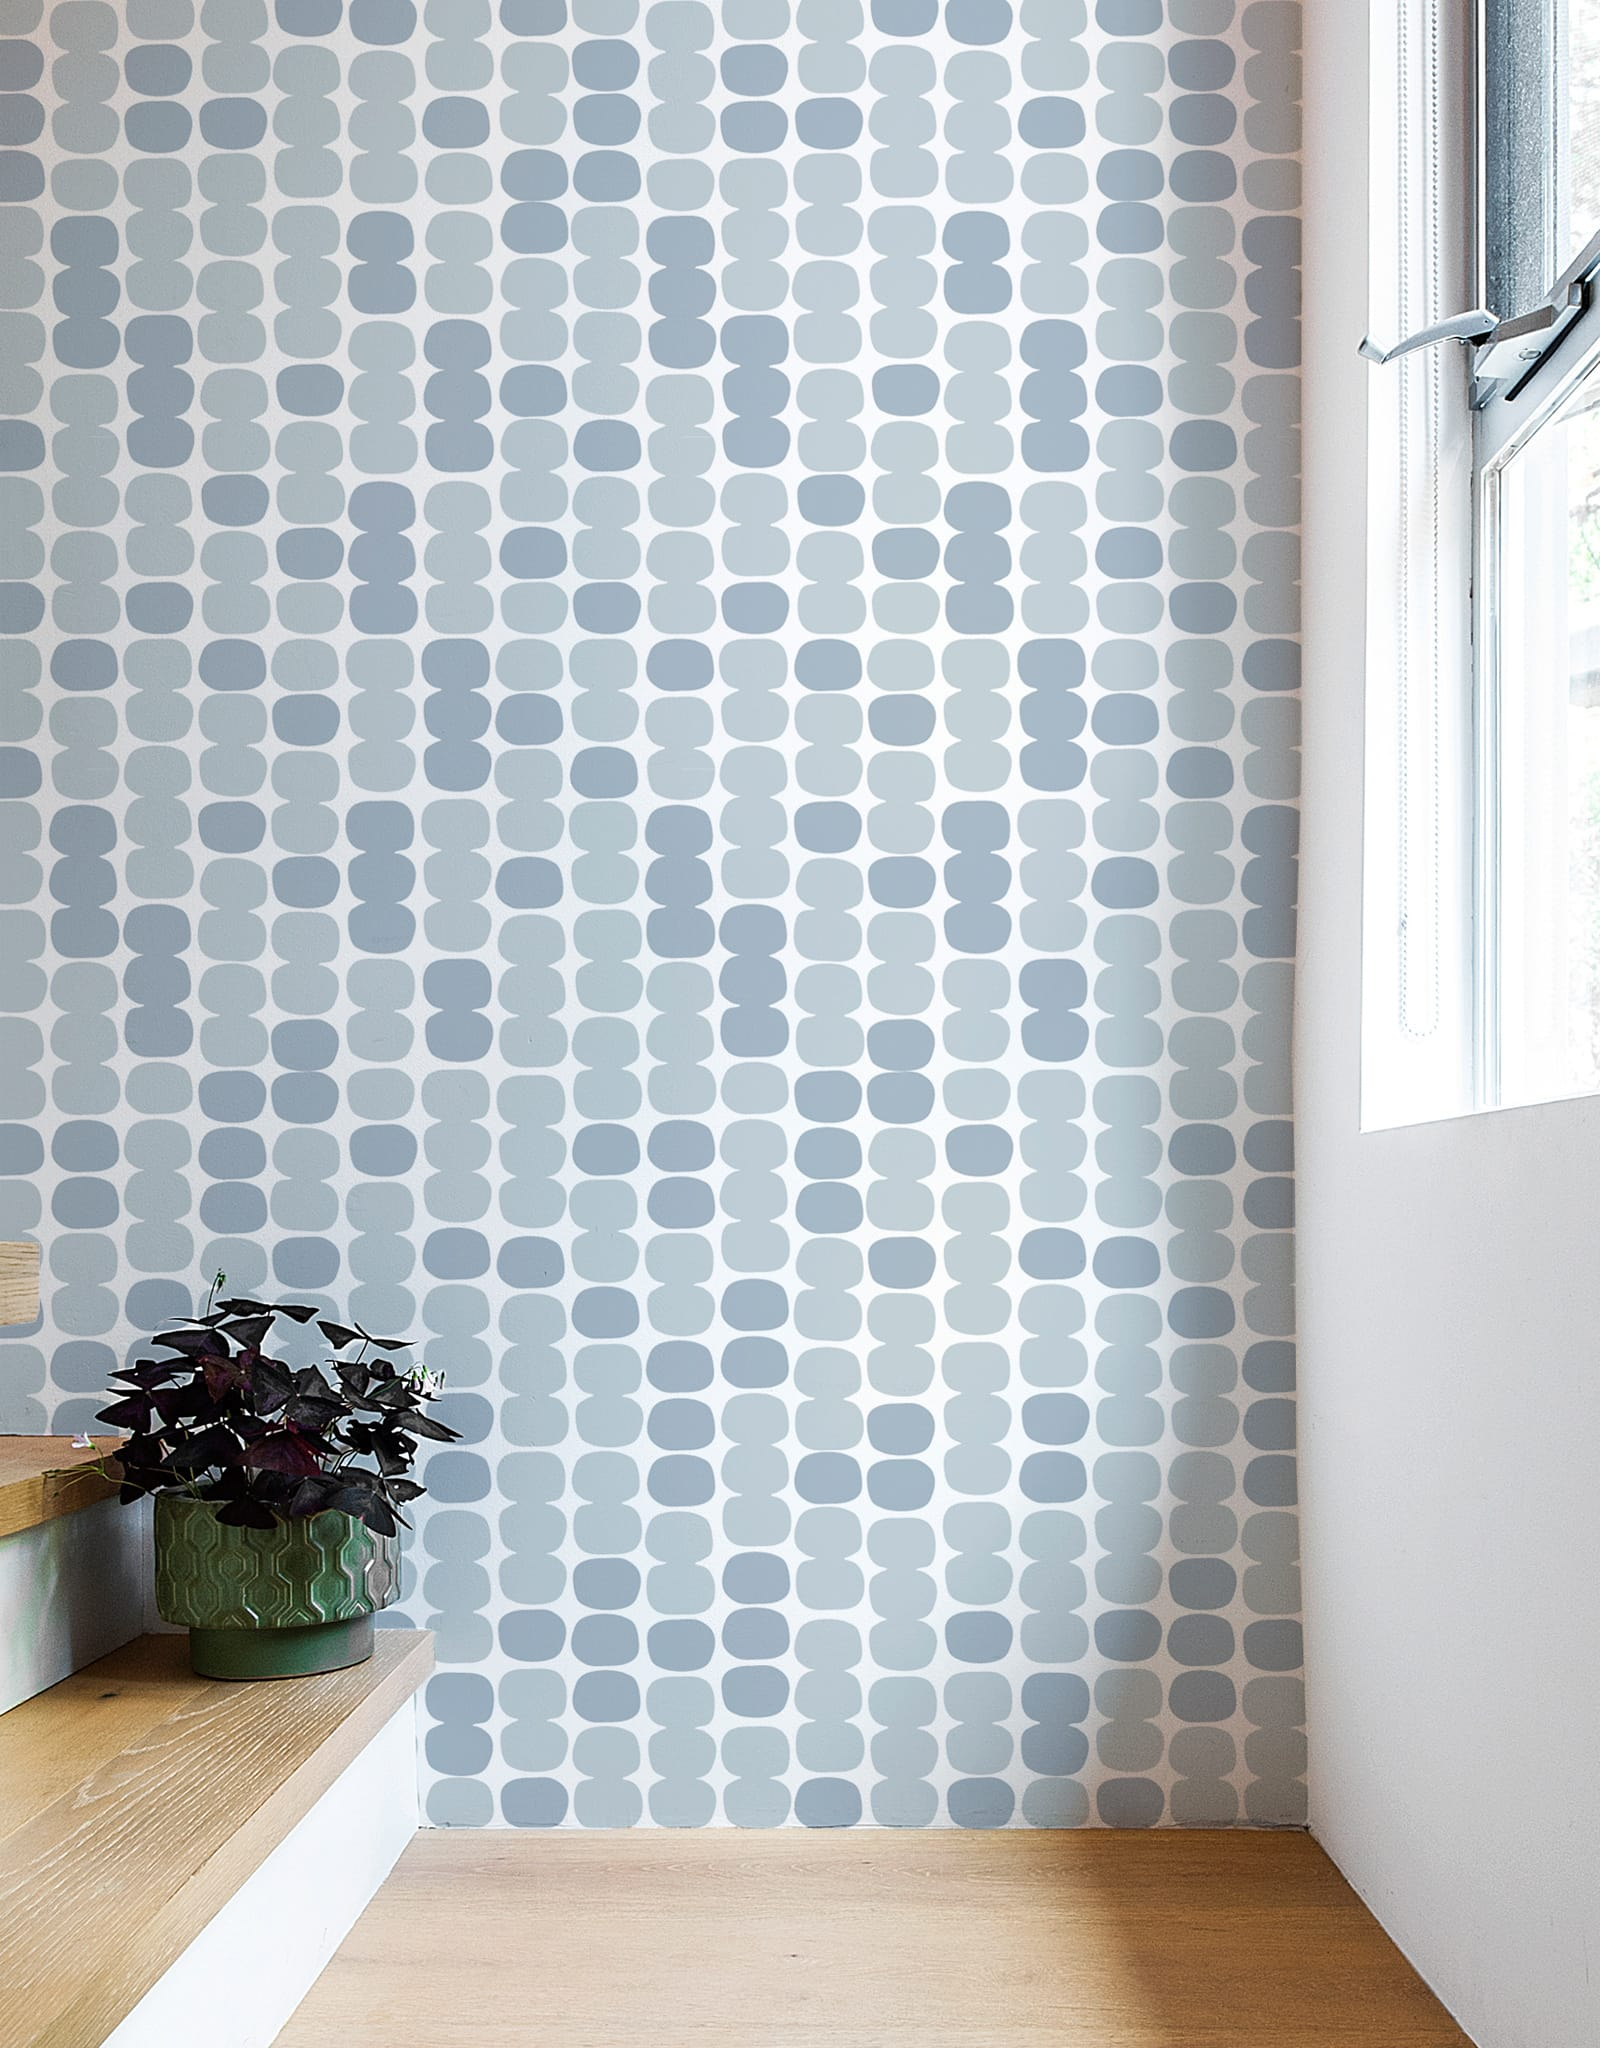 Pebbles Pattern Wall Tiles – Blik